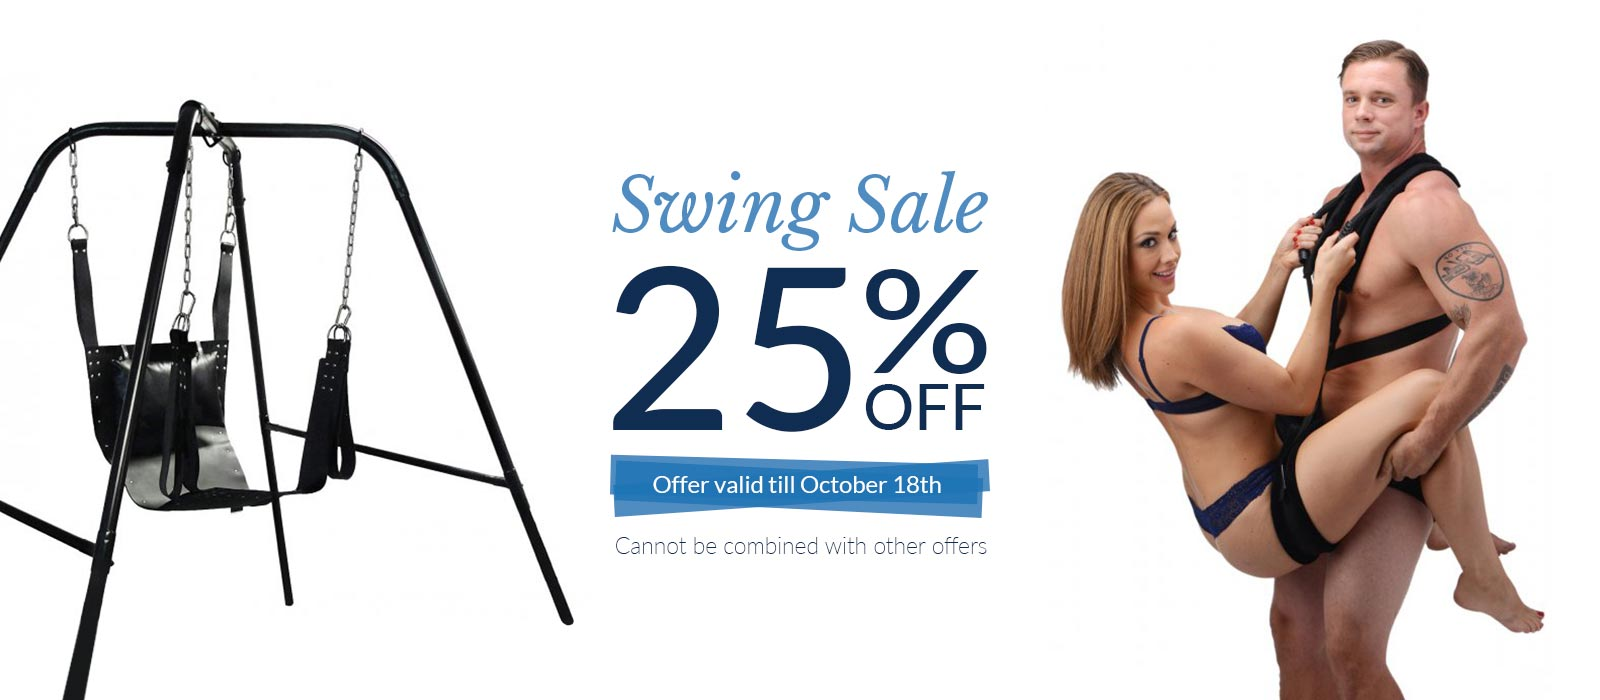 Bondage Fetish Store Swing Sale 25% off